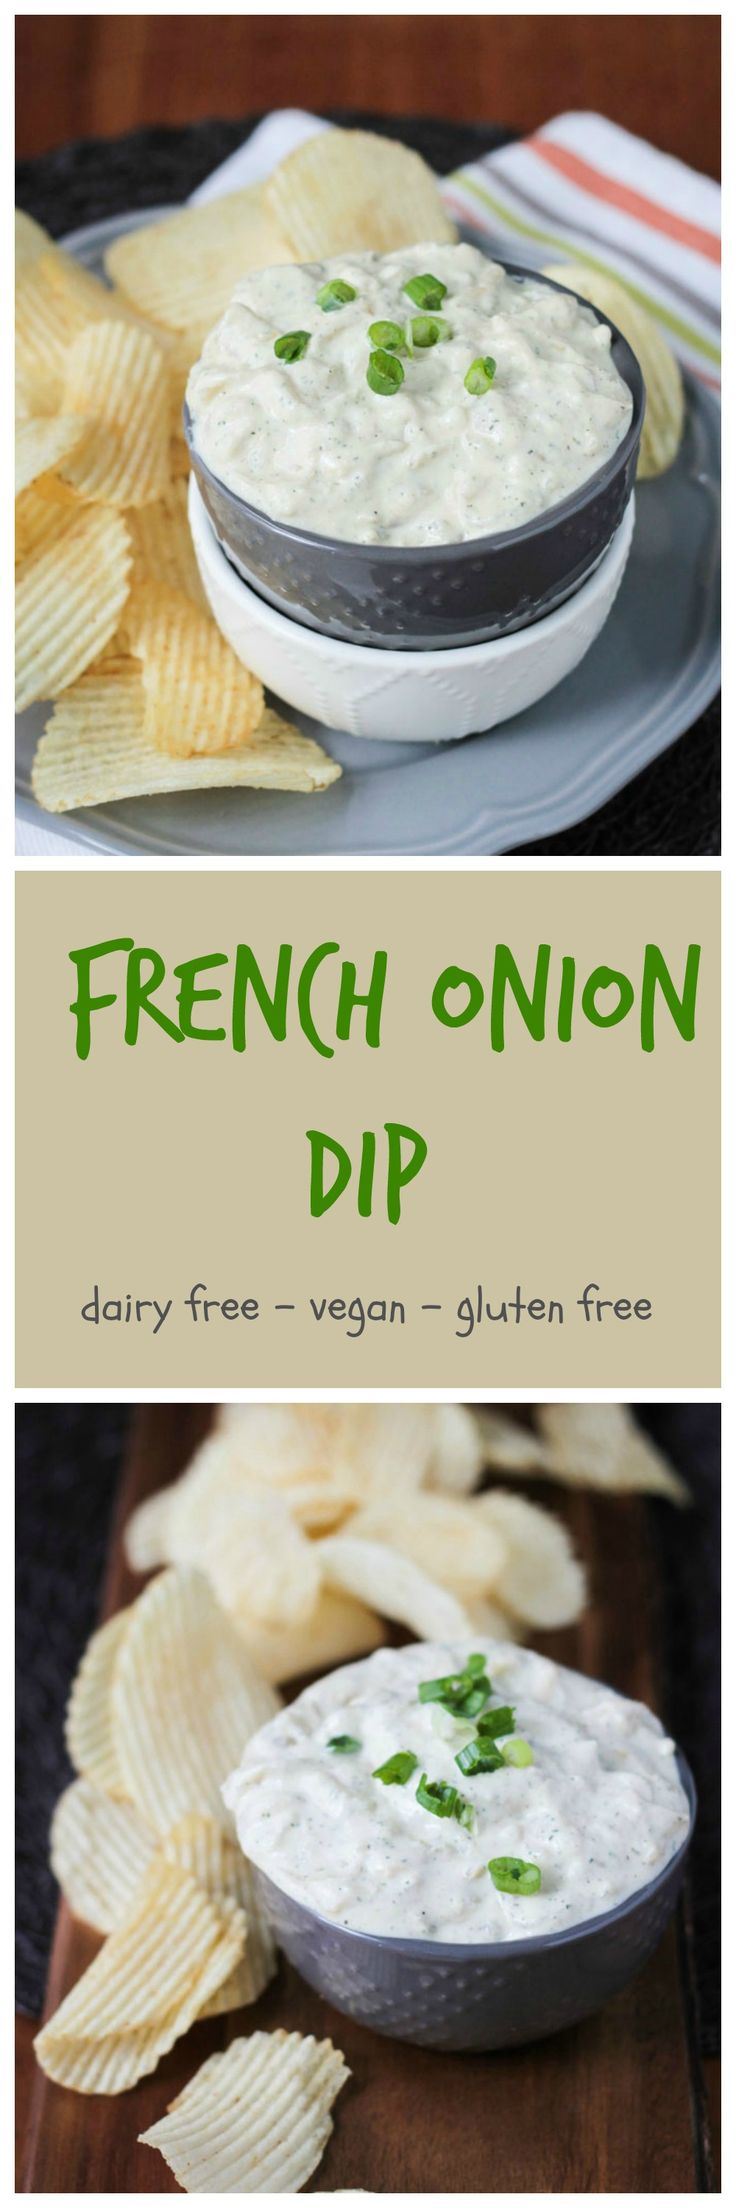 Vegan French Onion Dip w/ Dill - two of my favorite dips combined and made with all real whole food plant based ingredients. There are 2 whole onions in there - you won't find that in the processed store bought version! Grab some chips, raw veggies or crackers and dig in to cure your munchies. Perfect for game day or anytime a snack craving sneaks up on you.